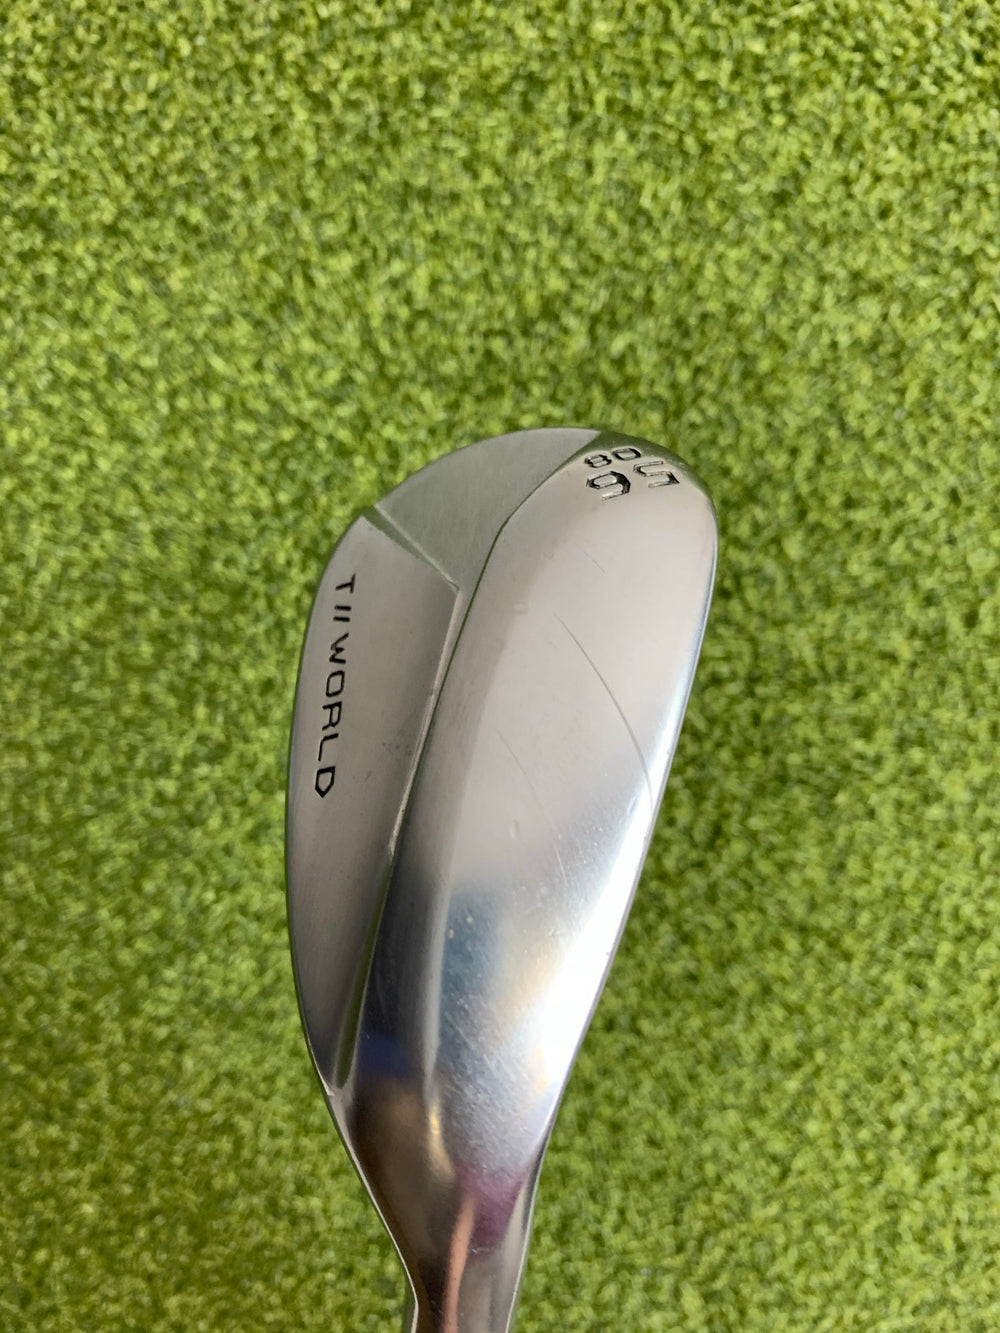 Homna TW-W52 56.08* Wedge, N.S. Pro Modus3 Wedge Flex, RH